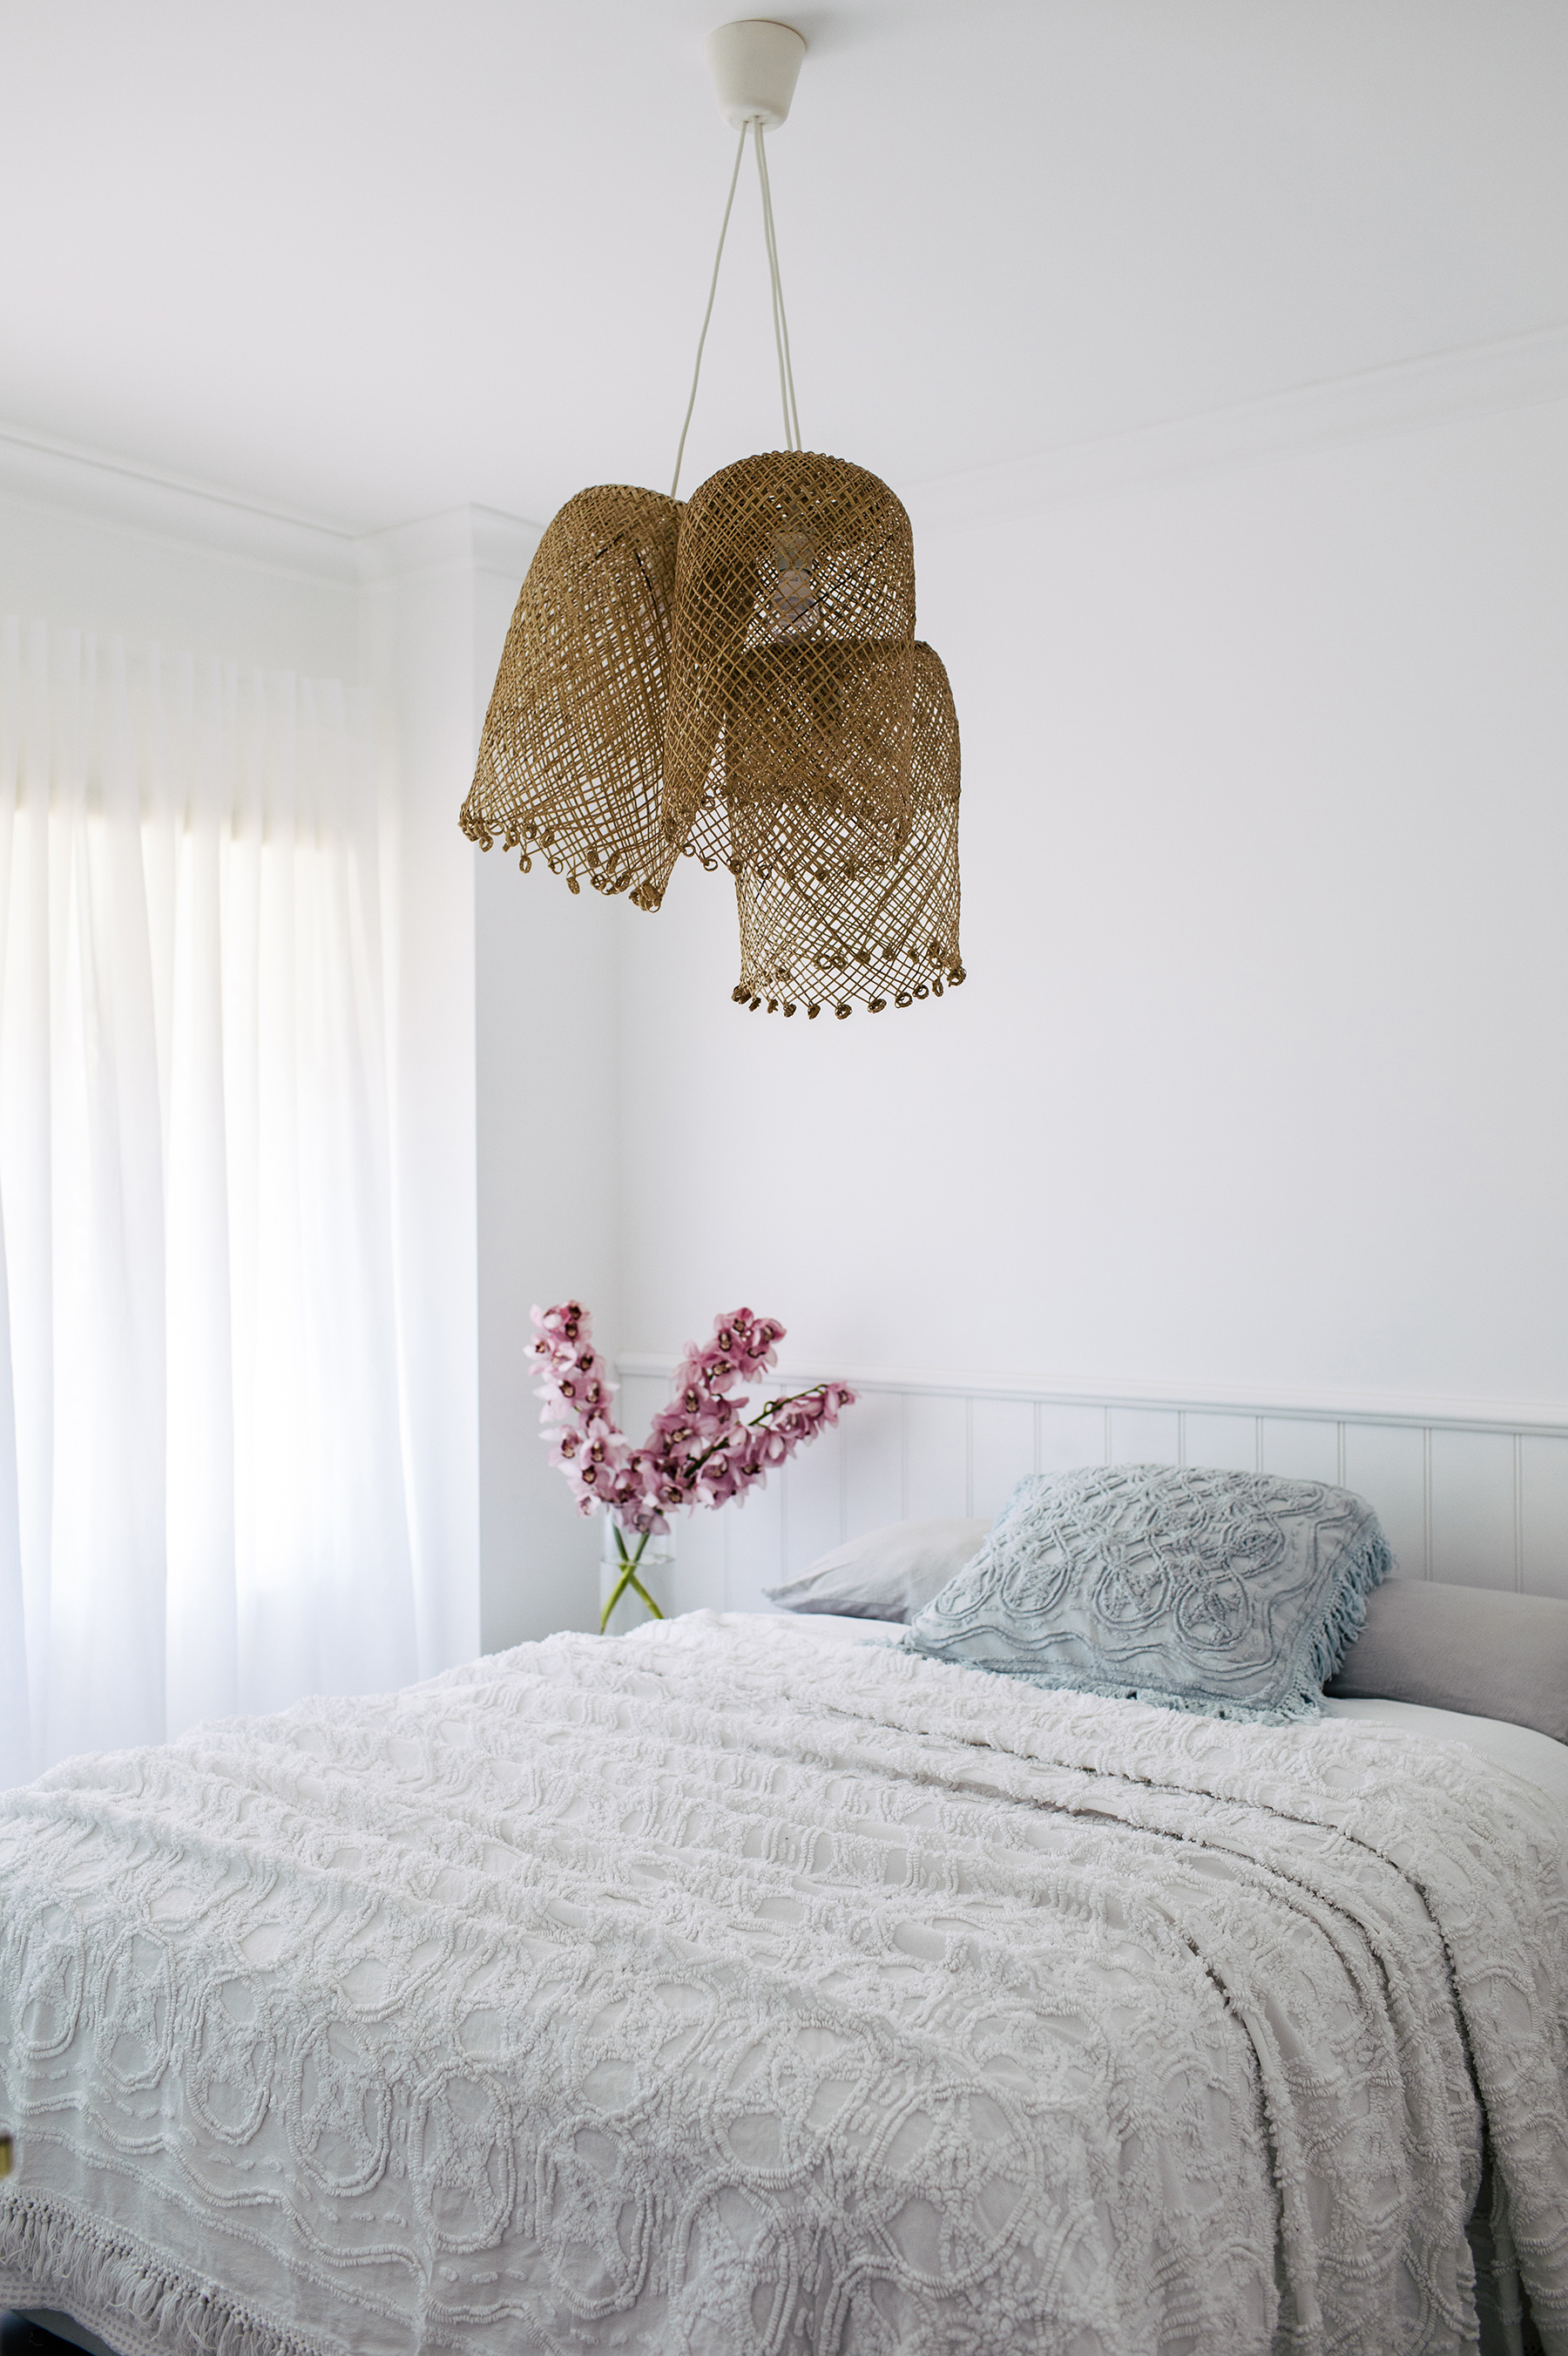 Photography  Hannah Blackmore /  Photoshoot styling  Jess Frazer /  Interior design  Catherine Ryan